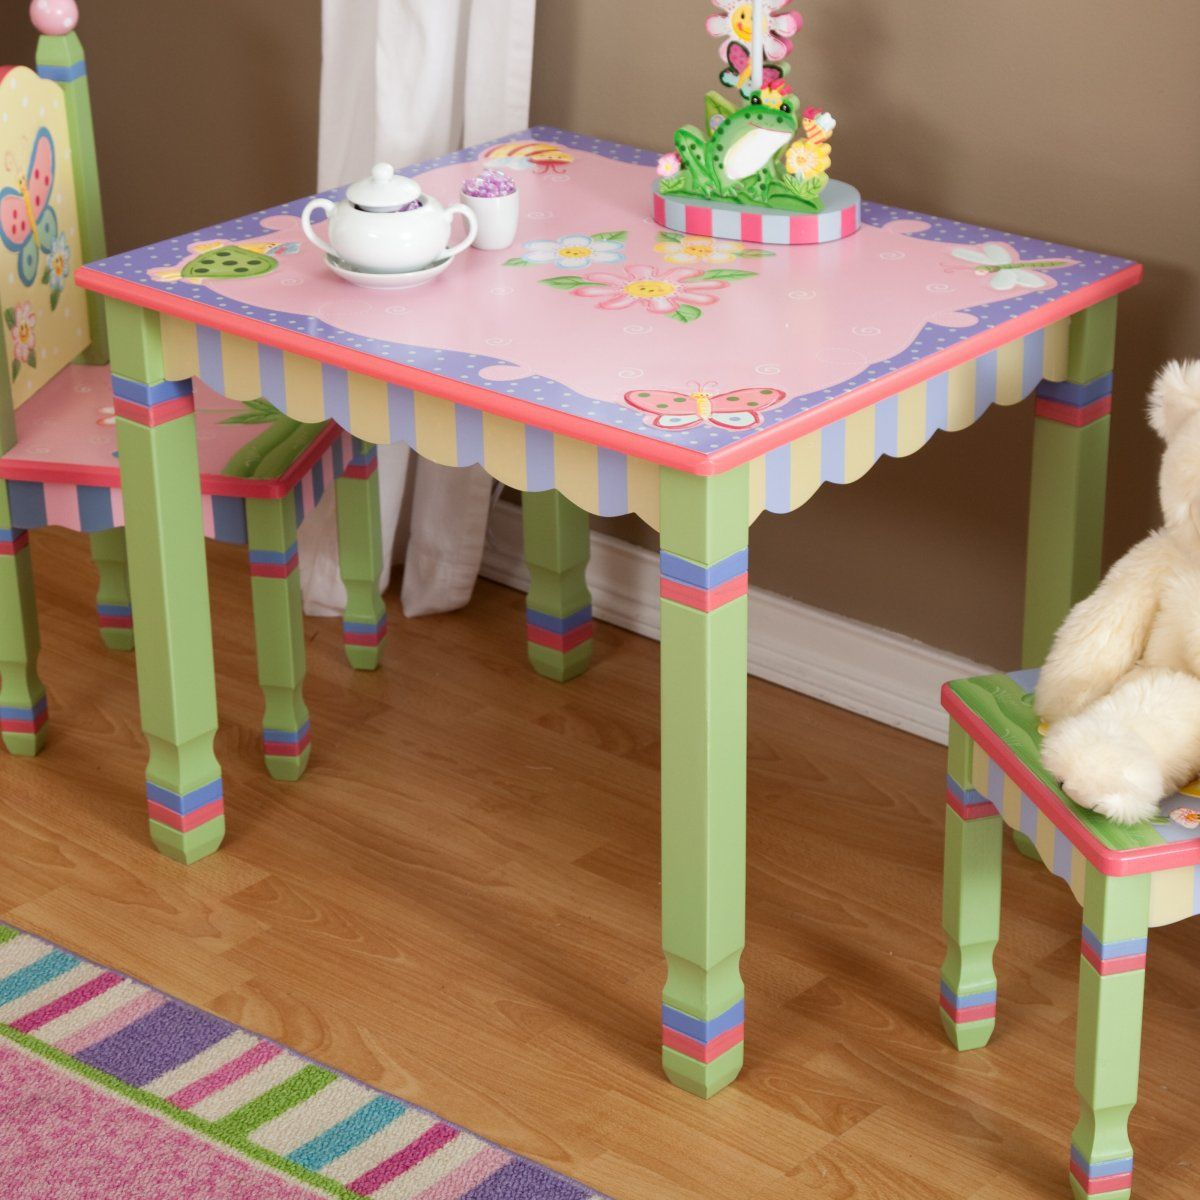 Magic Garden Table and Chair Set Kids Table and Chair